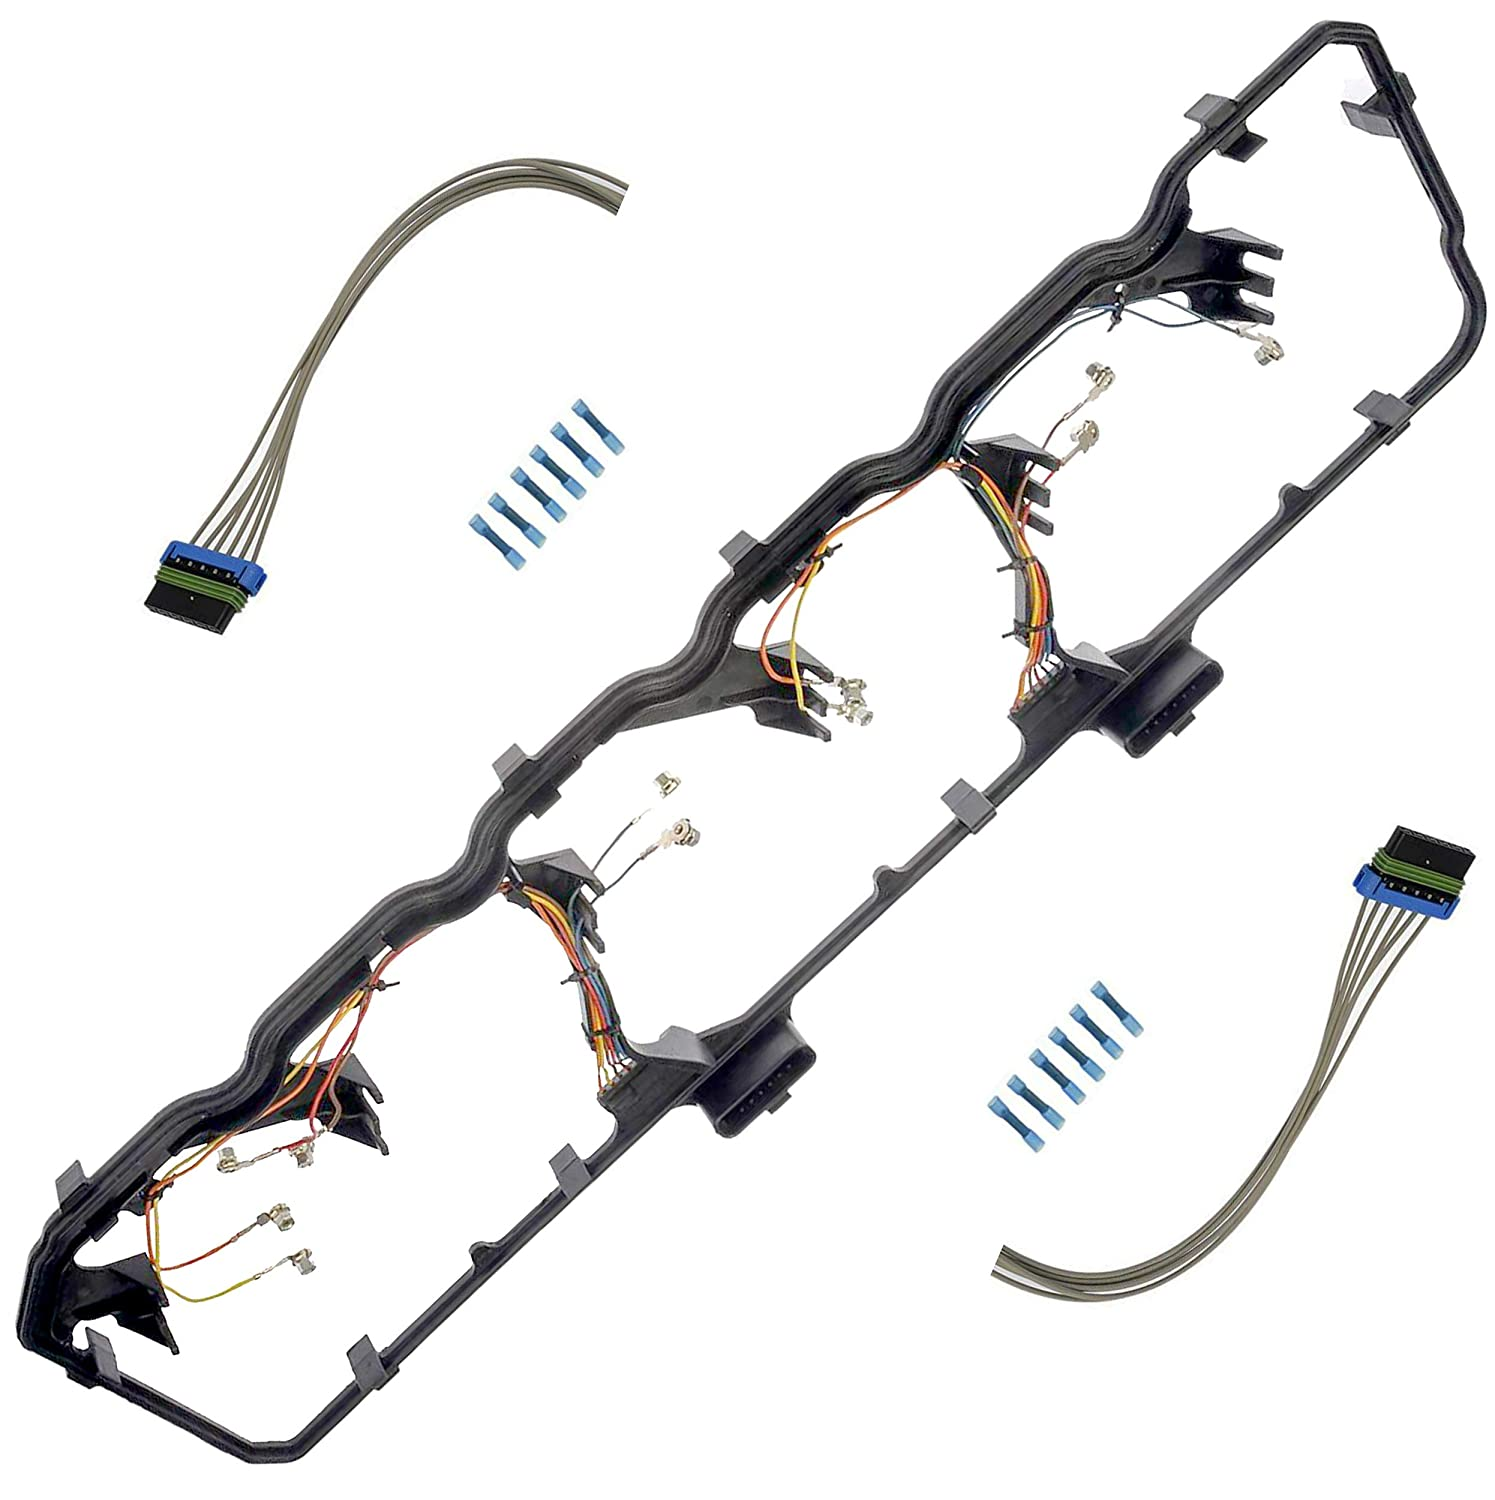 apdty 726315 valve cover gasket kit with fuel injector glow plug wiring harness fits 2006 2014 dodge ram 5 9l or 6 7l cummins diesel engine (replaces Dodge Ram 3500 Front Differential